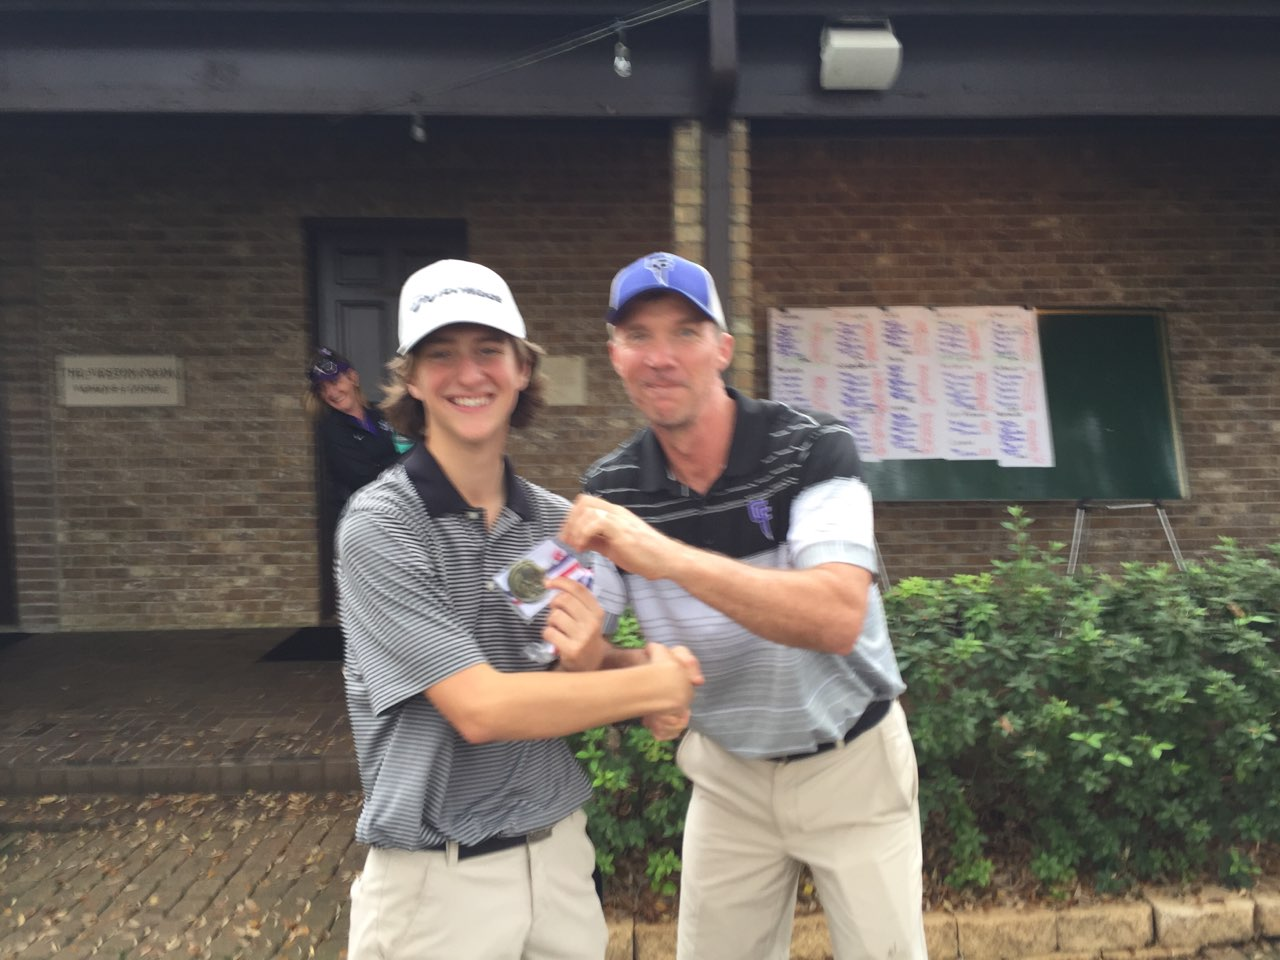 Foster Golf Team Places 3rd Overall at Weston Lakes Golf Tournament: Wills takes 1st Place Individual Trophy